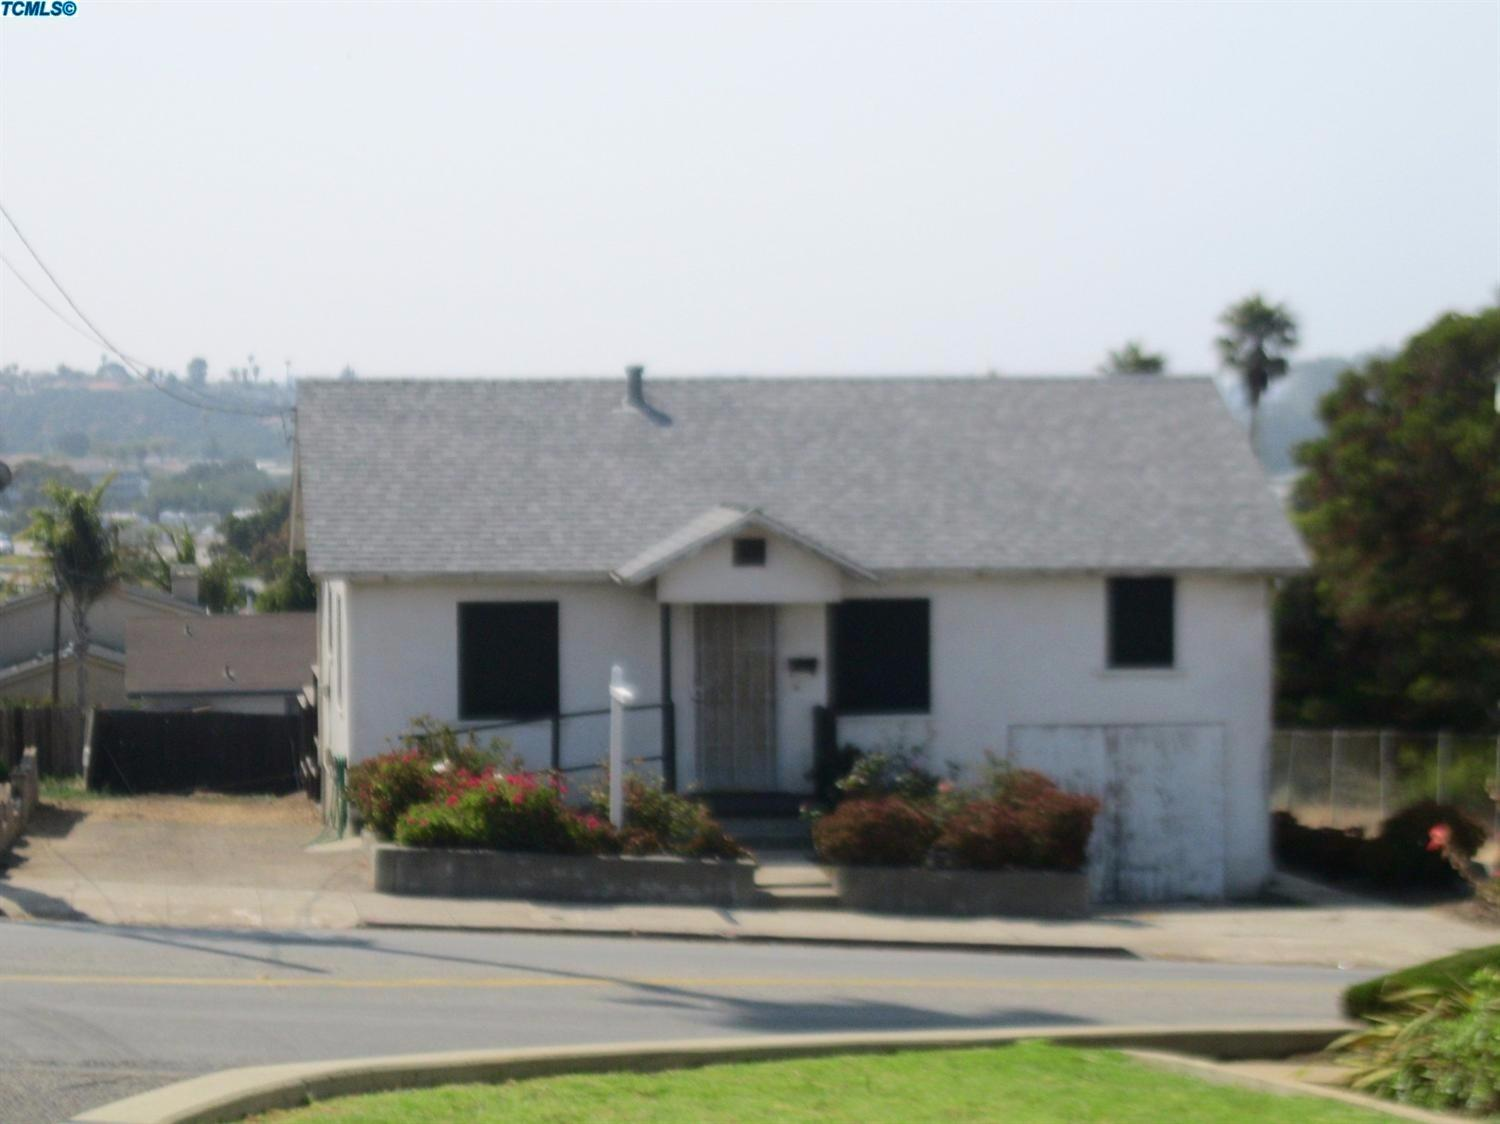 ZONED R-1 - R-3, Zoned for 4-5 Condos. Lg double lot. Ocean View ! 3 Blocks away from Beach, Pier, Restaurants & Shopping!! GREAT OPPORTUNITY to develop Condos/Pud 4-5 per City of Pismo. New Condos/Pud could have beautiful ocean views. Charming house to rent while you process your project! 3/1 bedroom over the garage with sink and cedar closet. Has deck that is wheel chair accessible. Call for more information.A conditional use permit in existing zoning could be obtained for another project per city of Pismo approval. Level 1 water moratorium has been lifted!